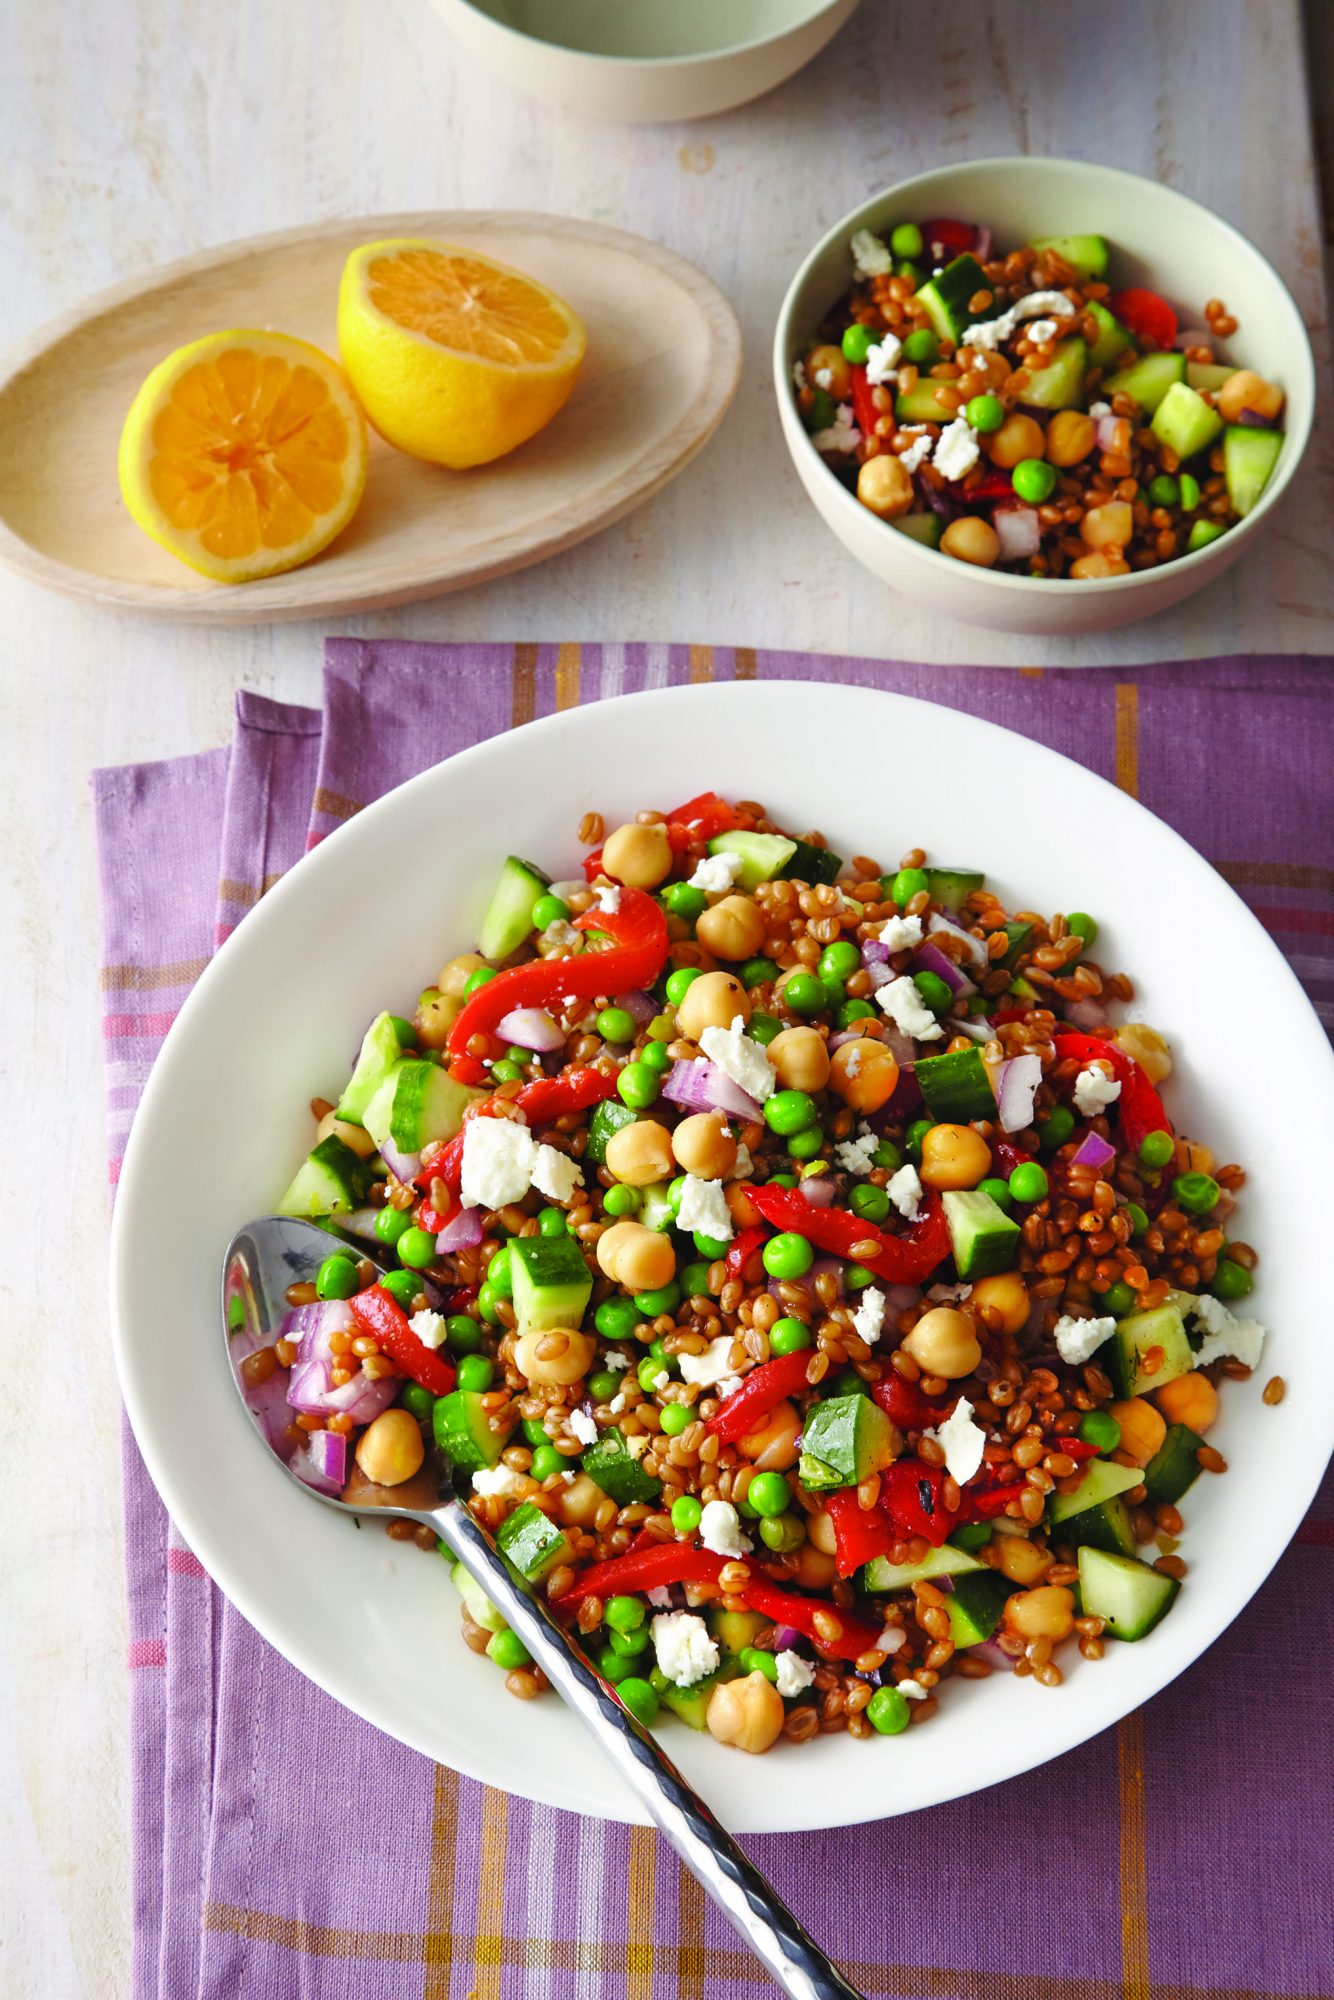 Lemon, Wheat Berry, and Chickpea Salad